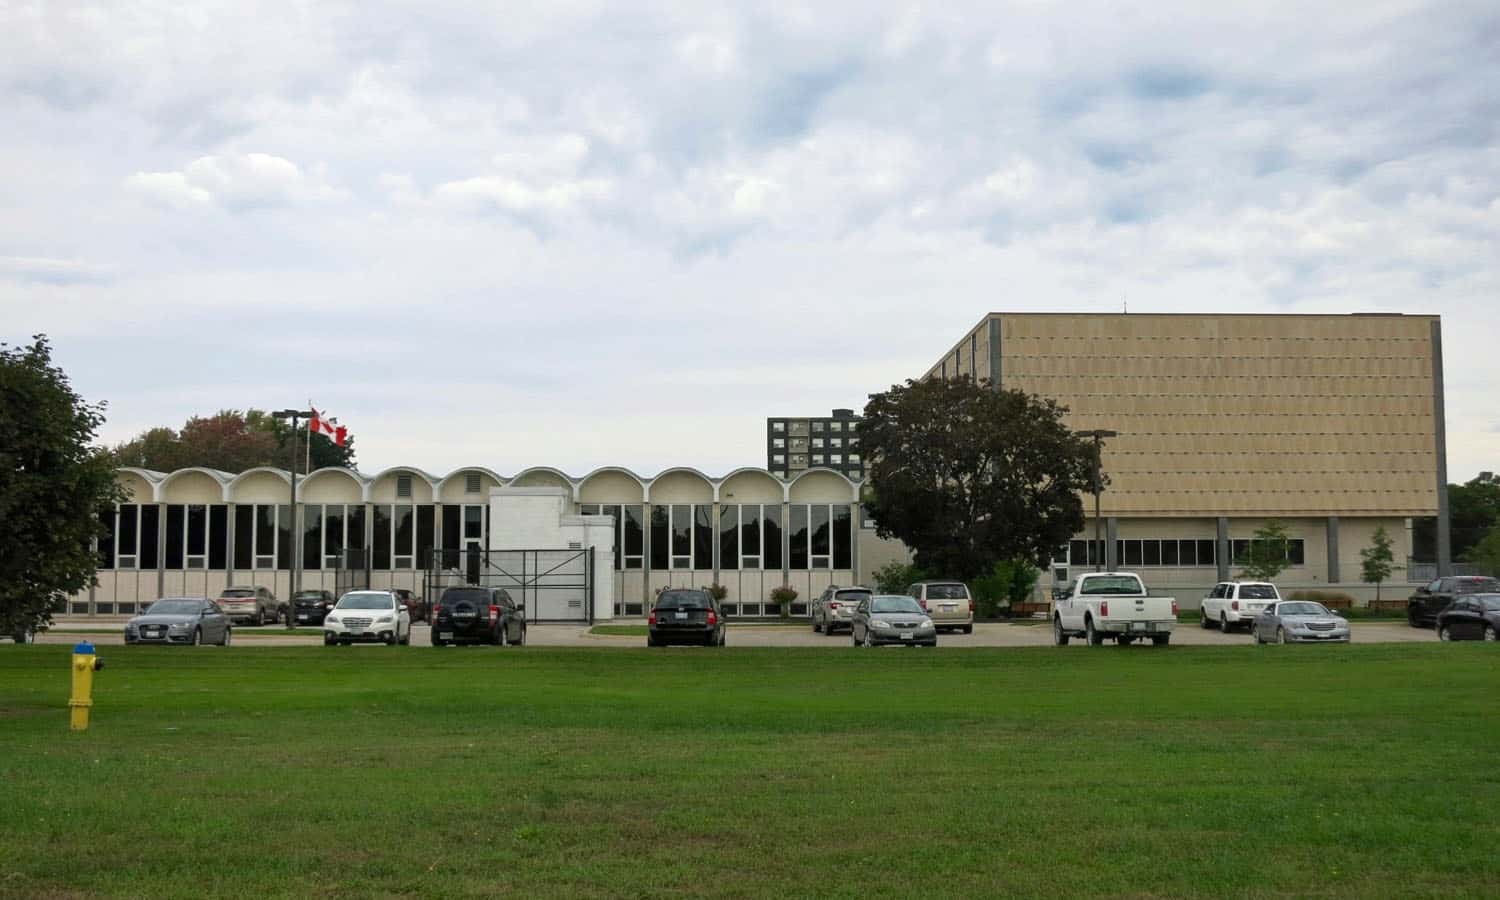 The south elevation of the complex as viewed from the approach to the Bluewater Bridge international border crossing